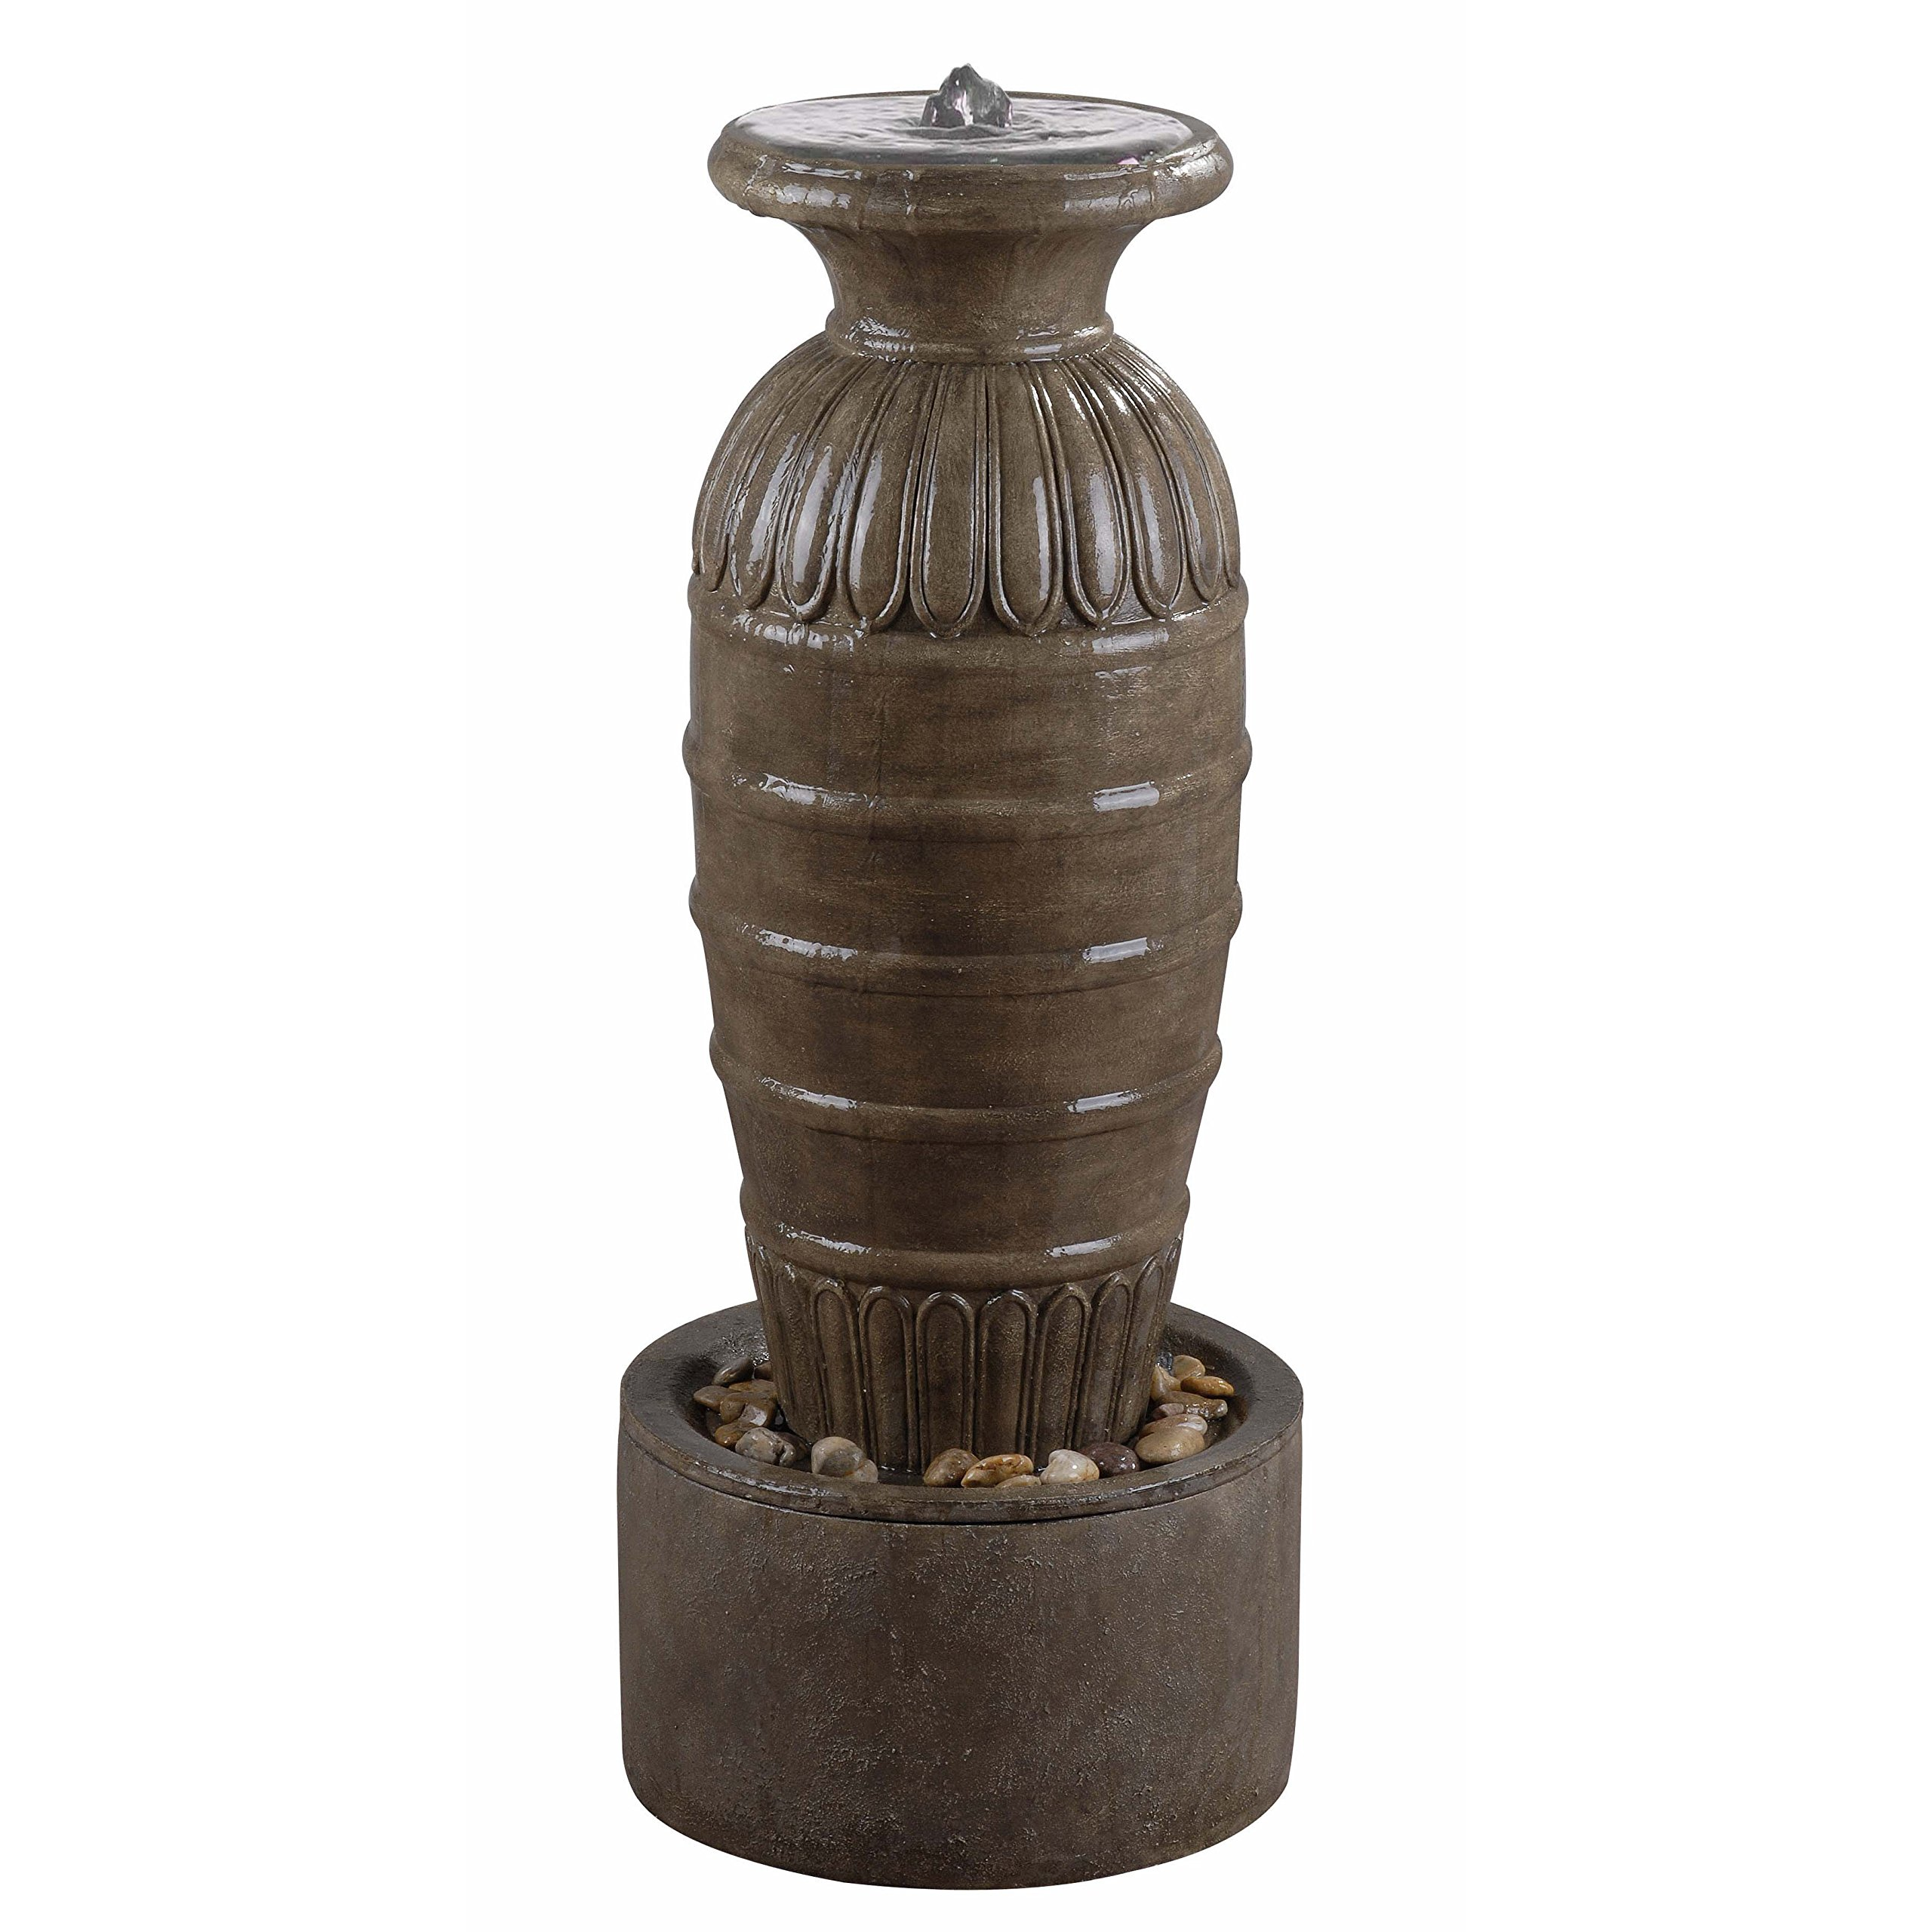 Kenroy Home 50039TE Ernesto Outdoor Floor Fountain, Tuscan Earth Finish